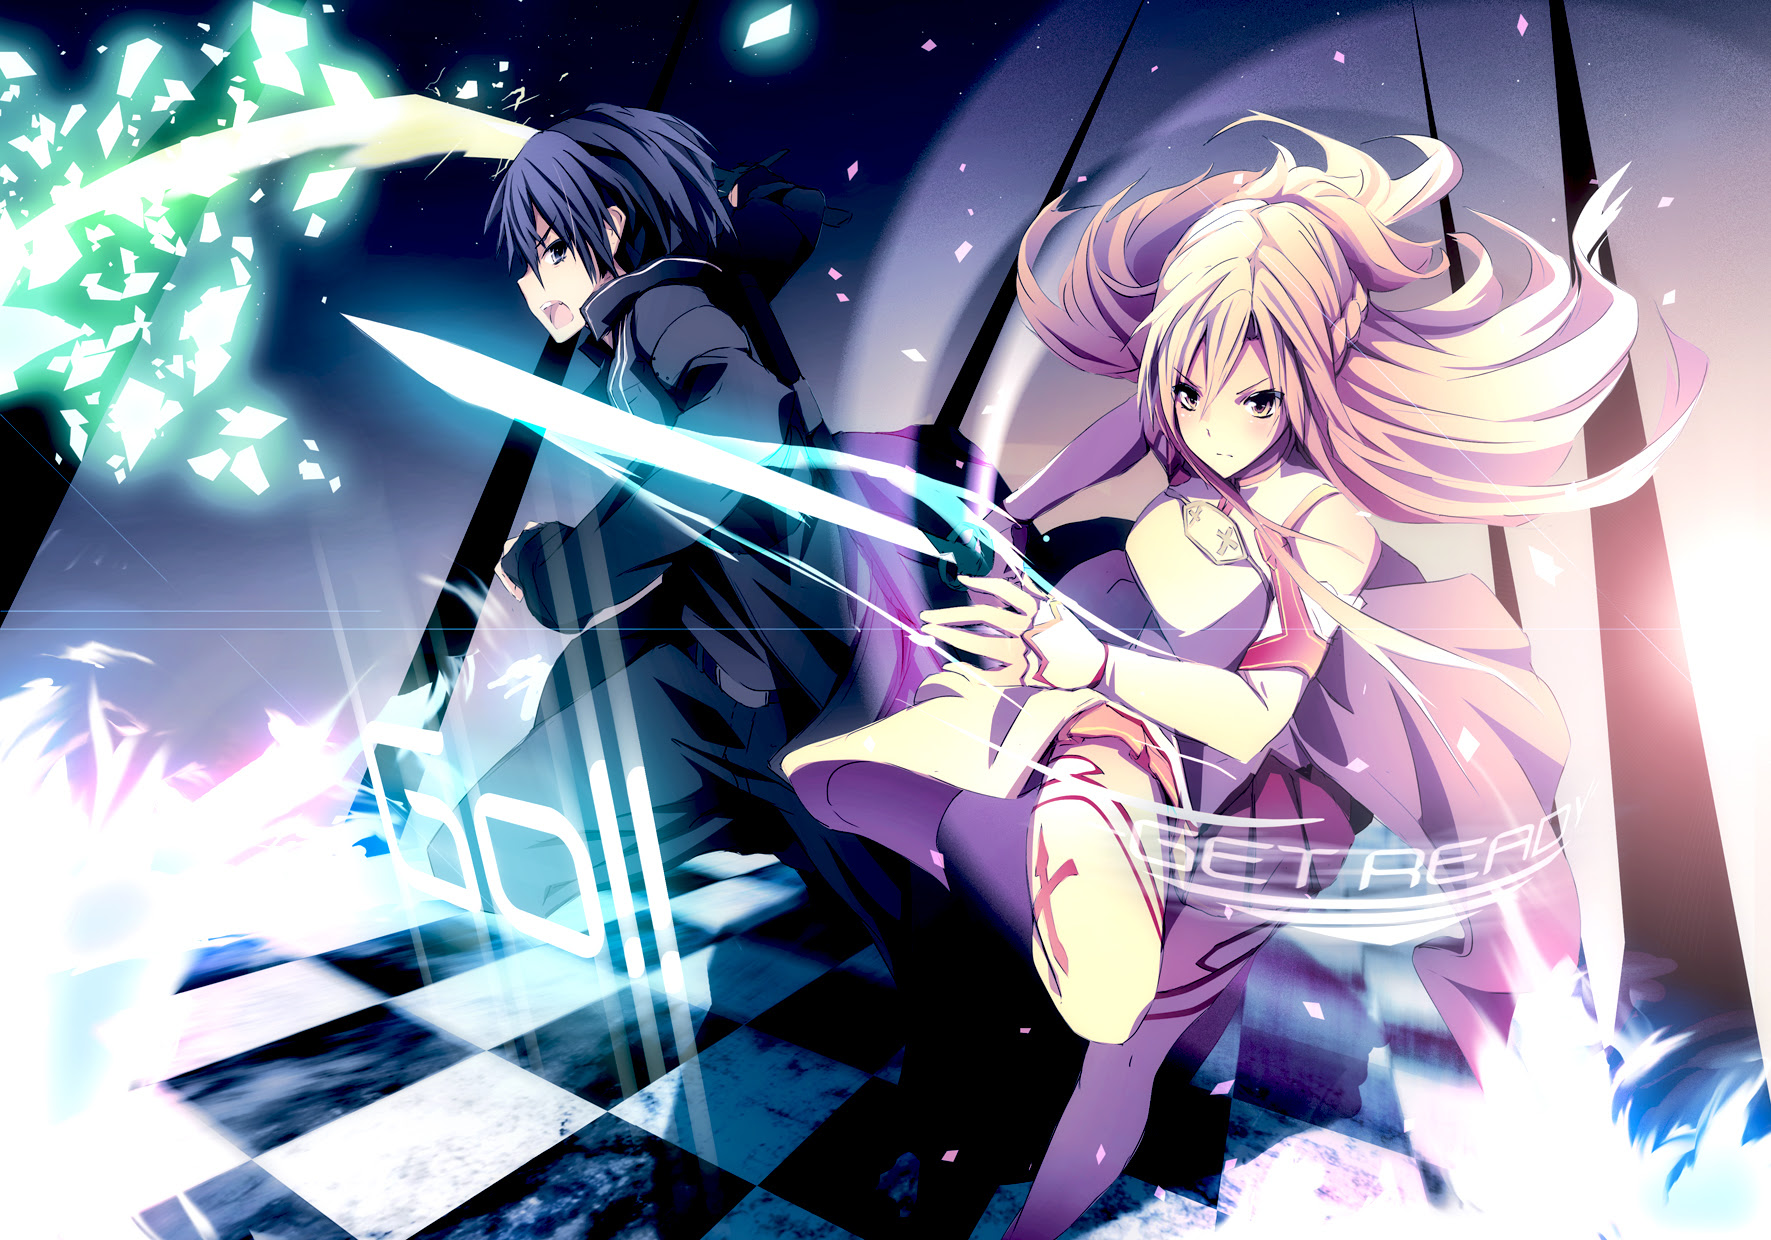 konachan 142674 black_eyes black_hair blonde_hair gloves kirigaya_kazuto long_hair merontomari short_hair sword sword_art_online weapon yellow_eyes yuuki_asuna.jpg